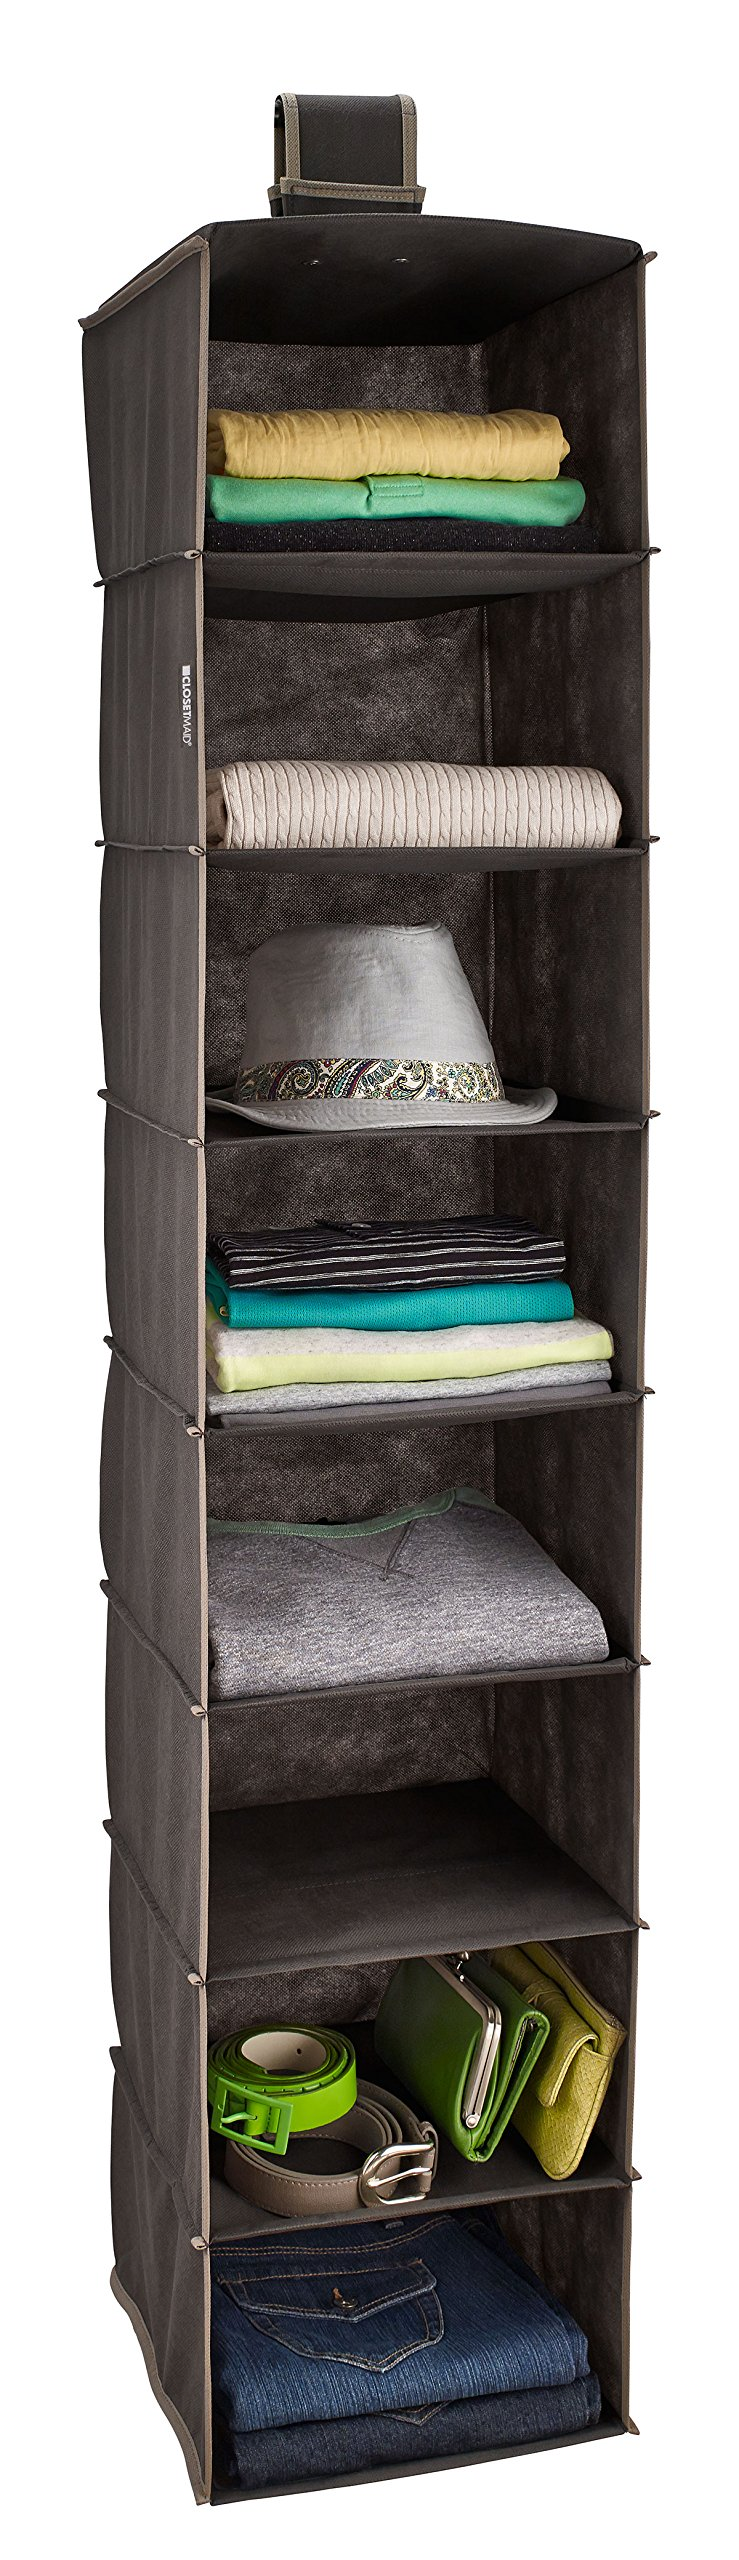 ClosetMaid 31454 8-Shelf Hanging Closet Organizer, Gray